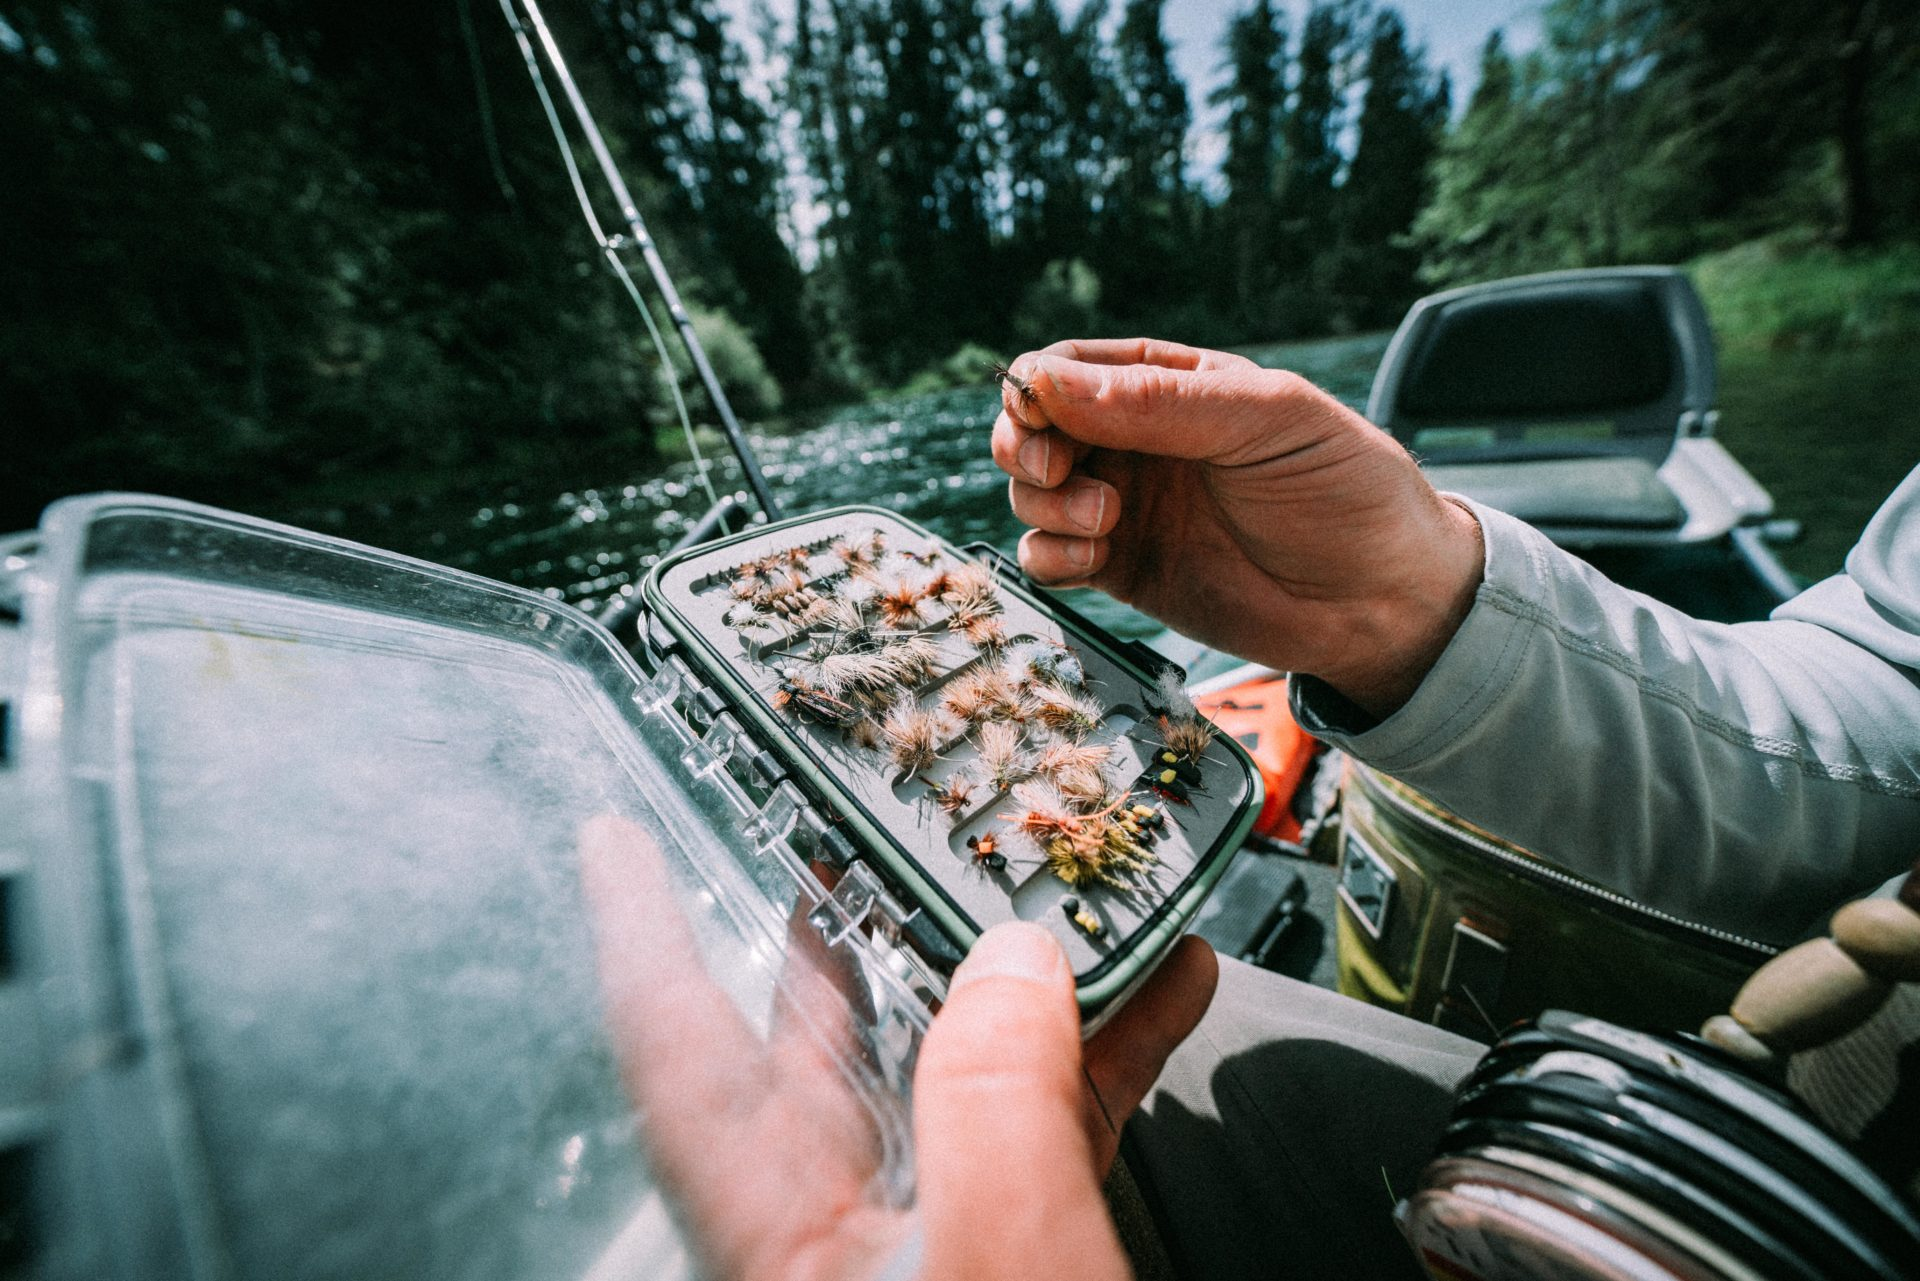 We've all had the experience of looking through our fly boxes, not knowing which direction to go next. If matching the hatch isn't providing results, switch it up. Photo by Chase White.